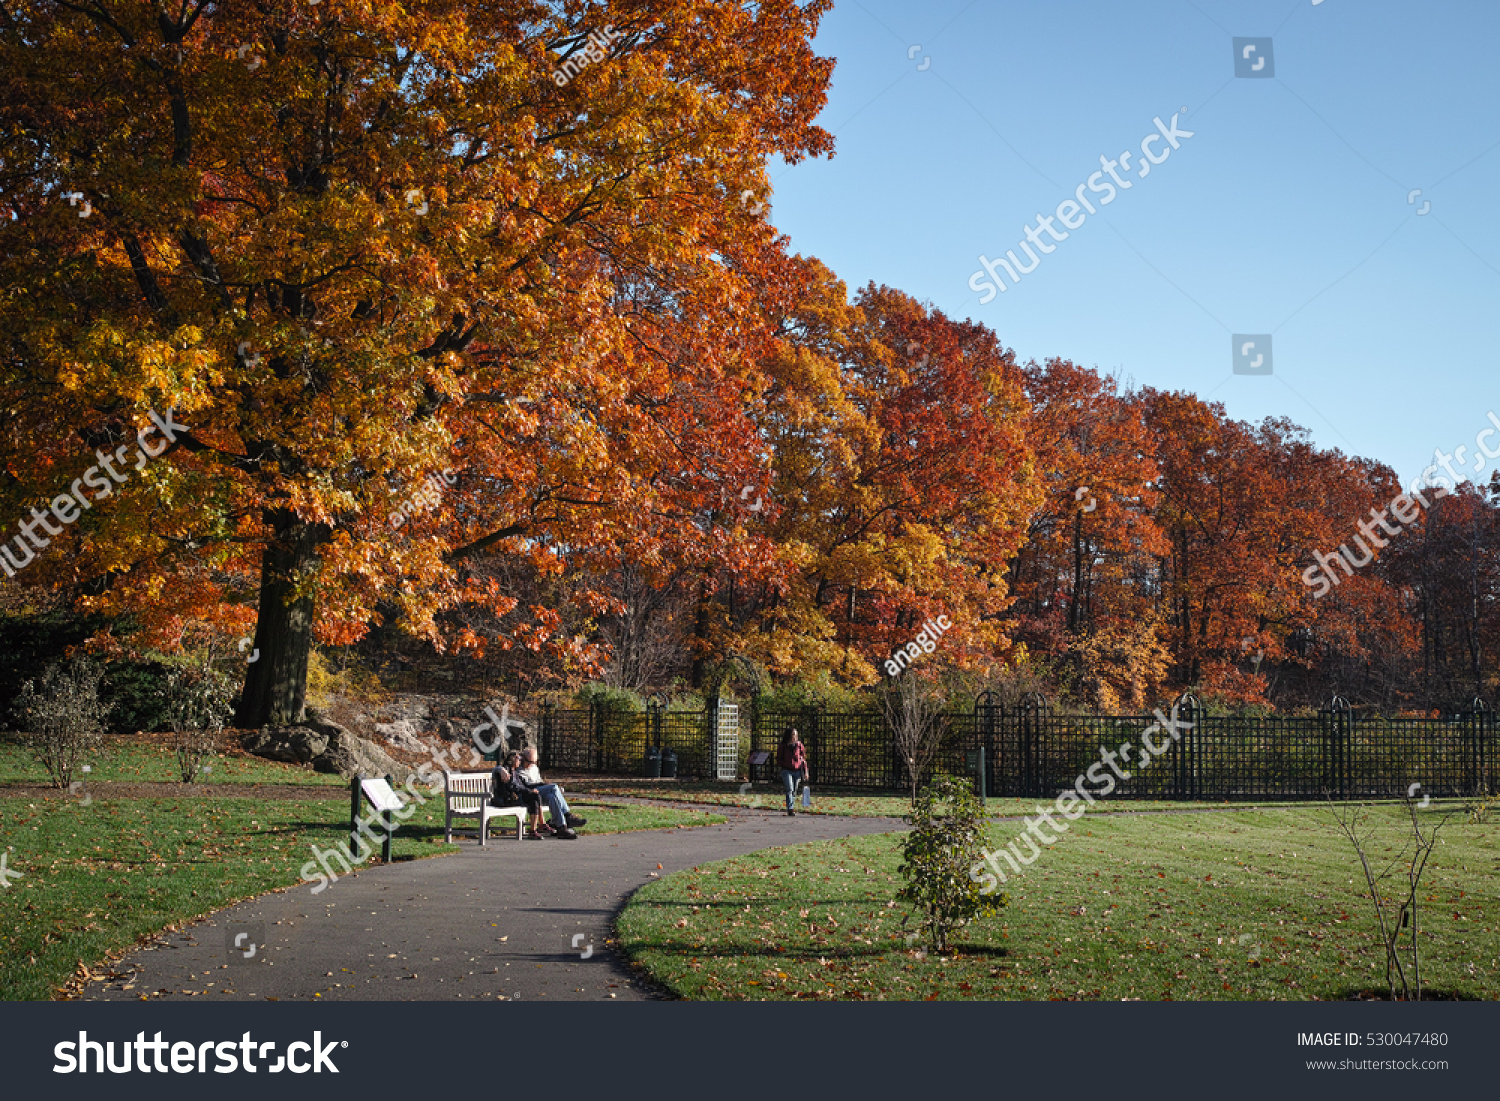 People Visiting New York Botanical Garden Stock Photo (Edit Now ...